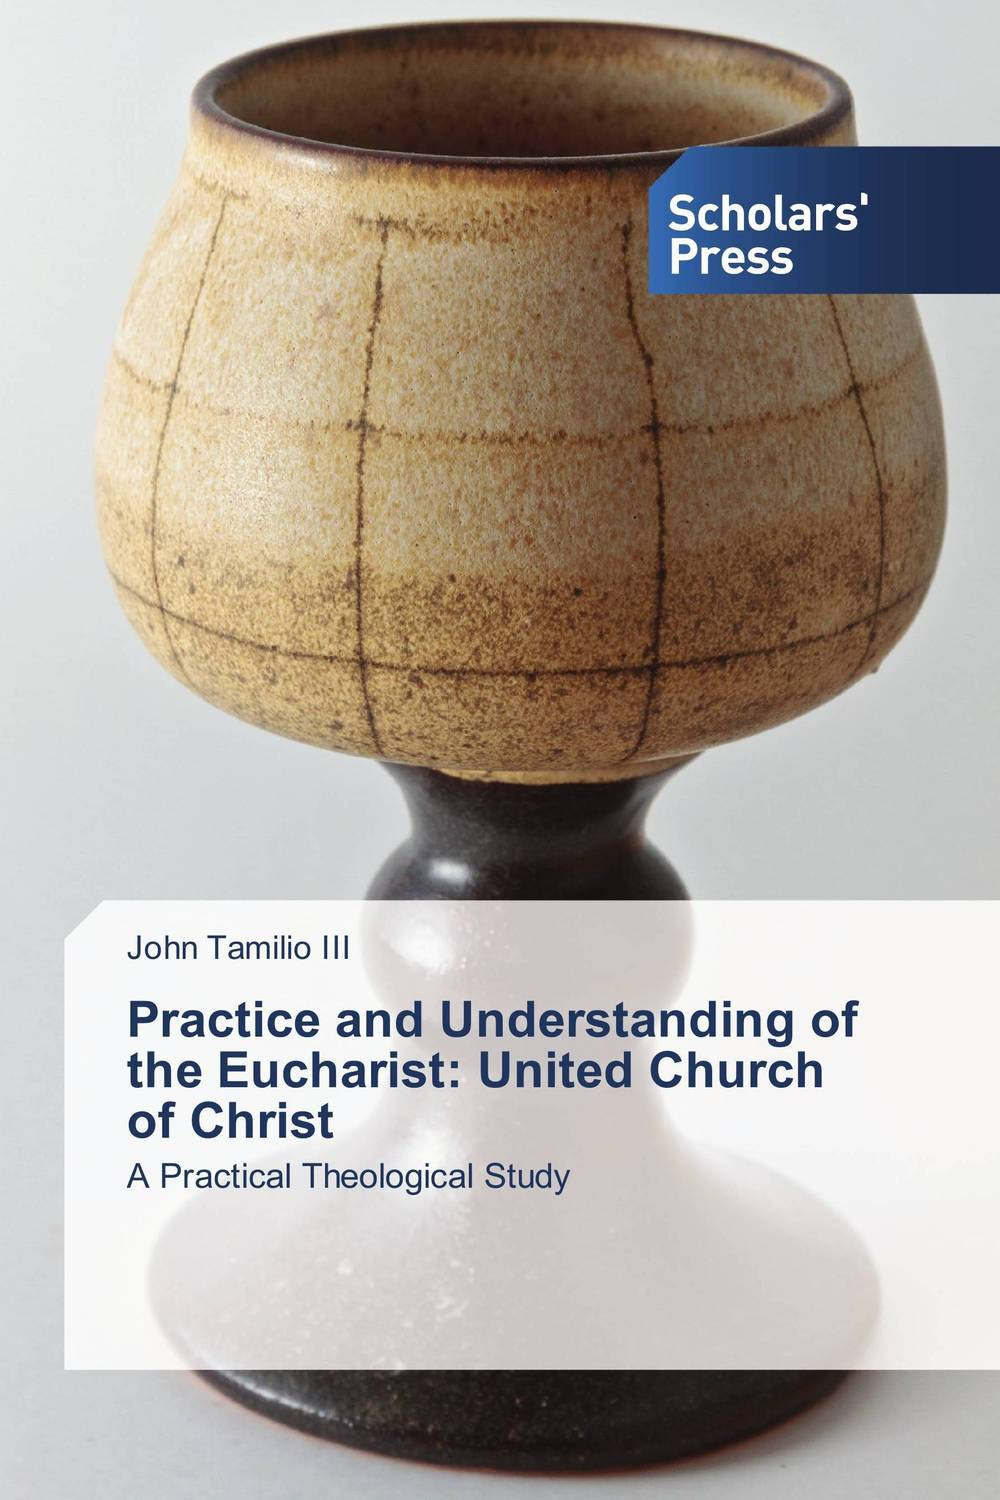 Practice and Understanding of the Eucharist: United Church of Christ travels in the united states etc during 1849 and 1850